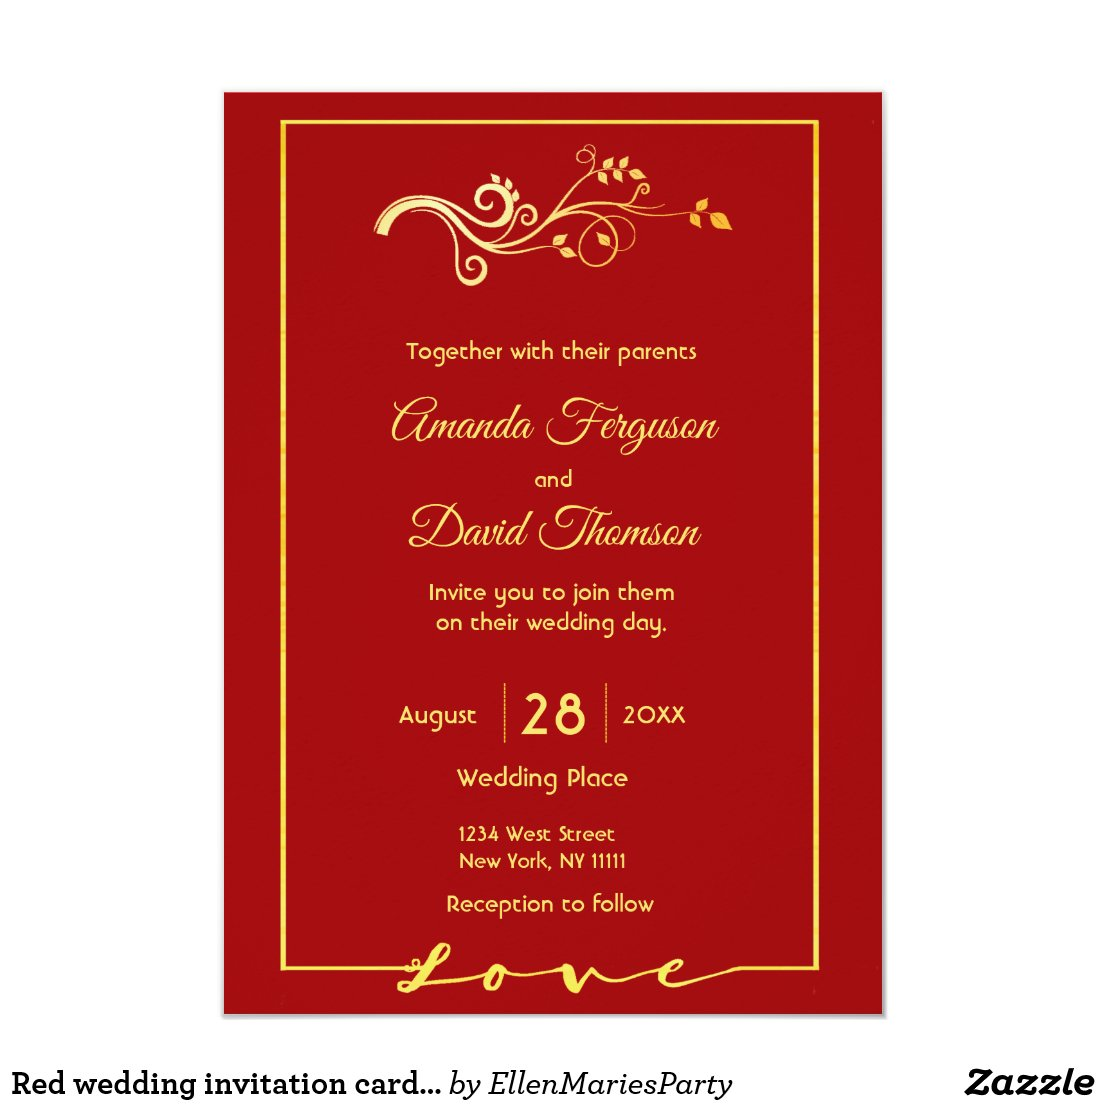 Red wedding invitation card with faux gold decor